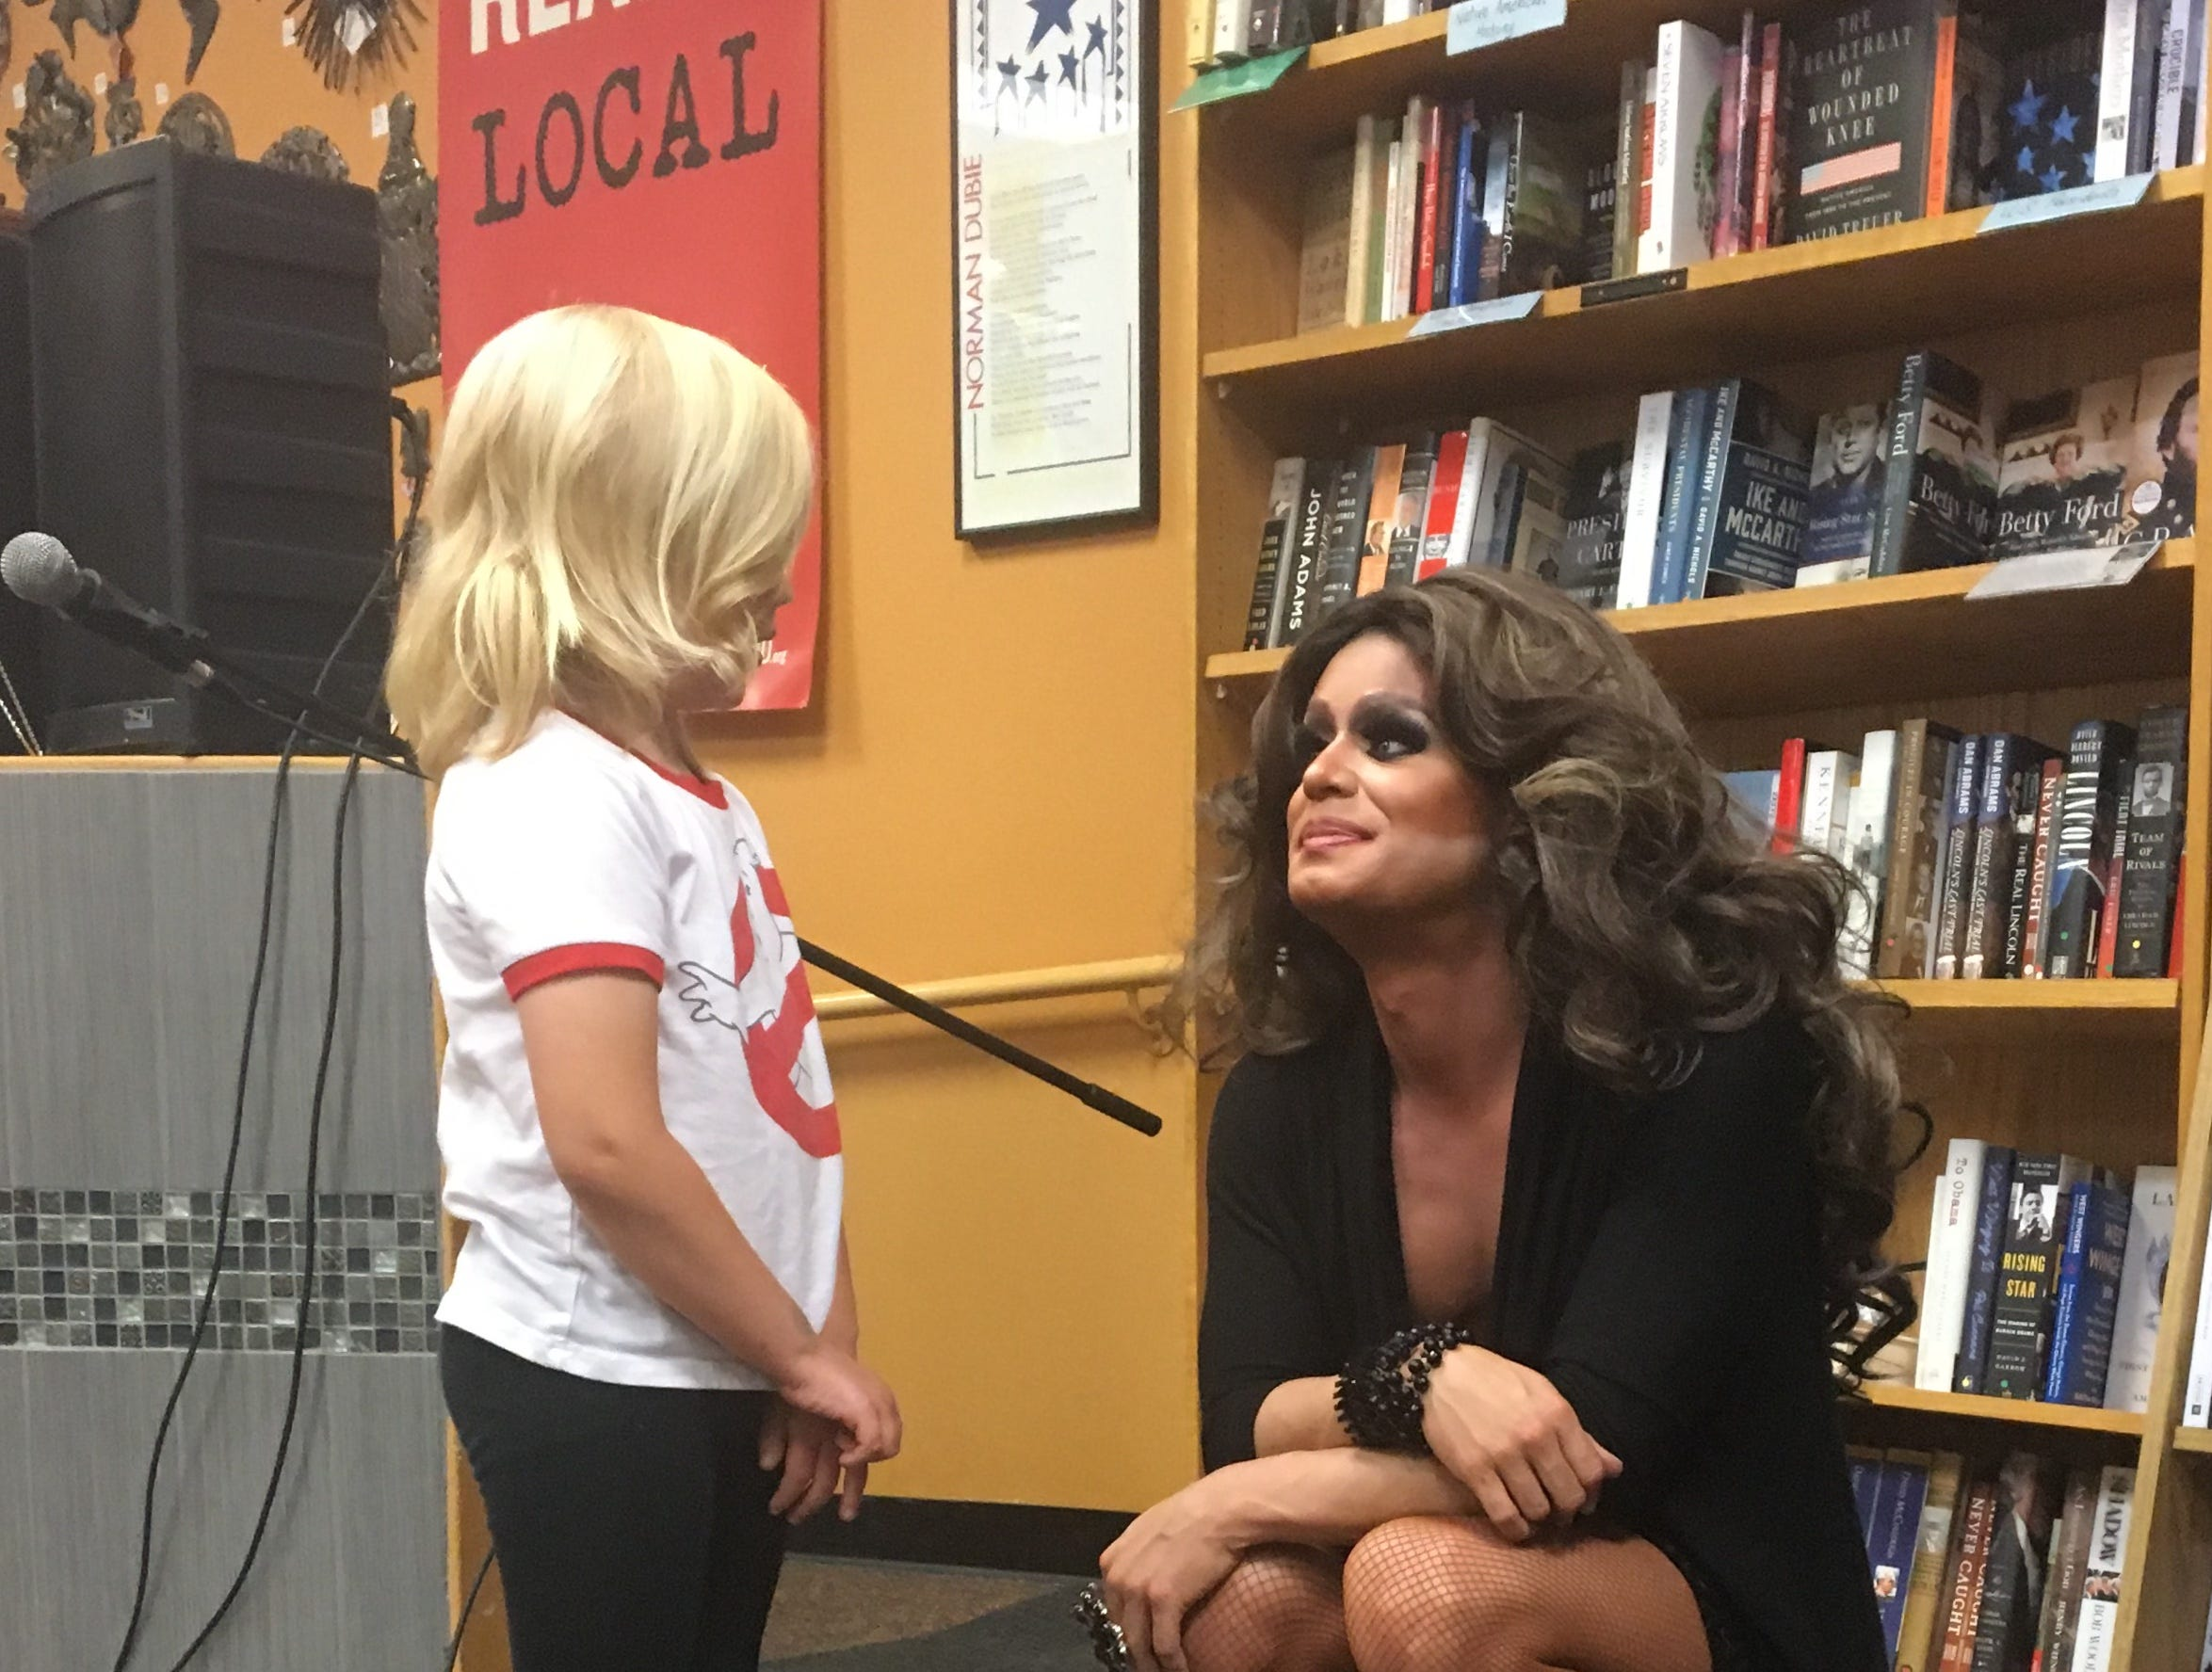 Drag queen Nevaeh McKenzie talks with 5-year-old Sully, whose mom Tricia Miller brought him to Drag Queen Storytime at Changing Hands Bookstore in Tempe. She loved the stories they read about acceptance and how our differences should be embraced.